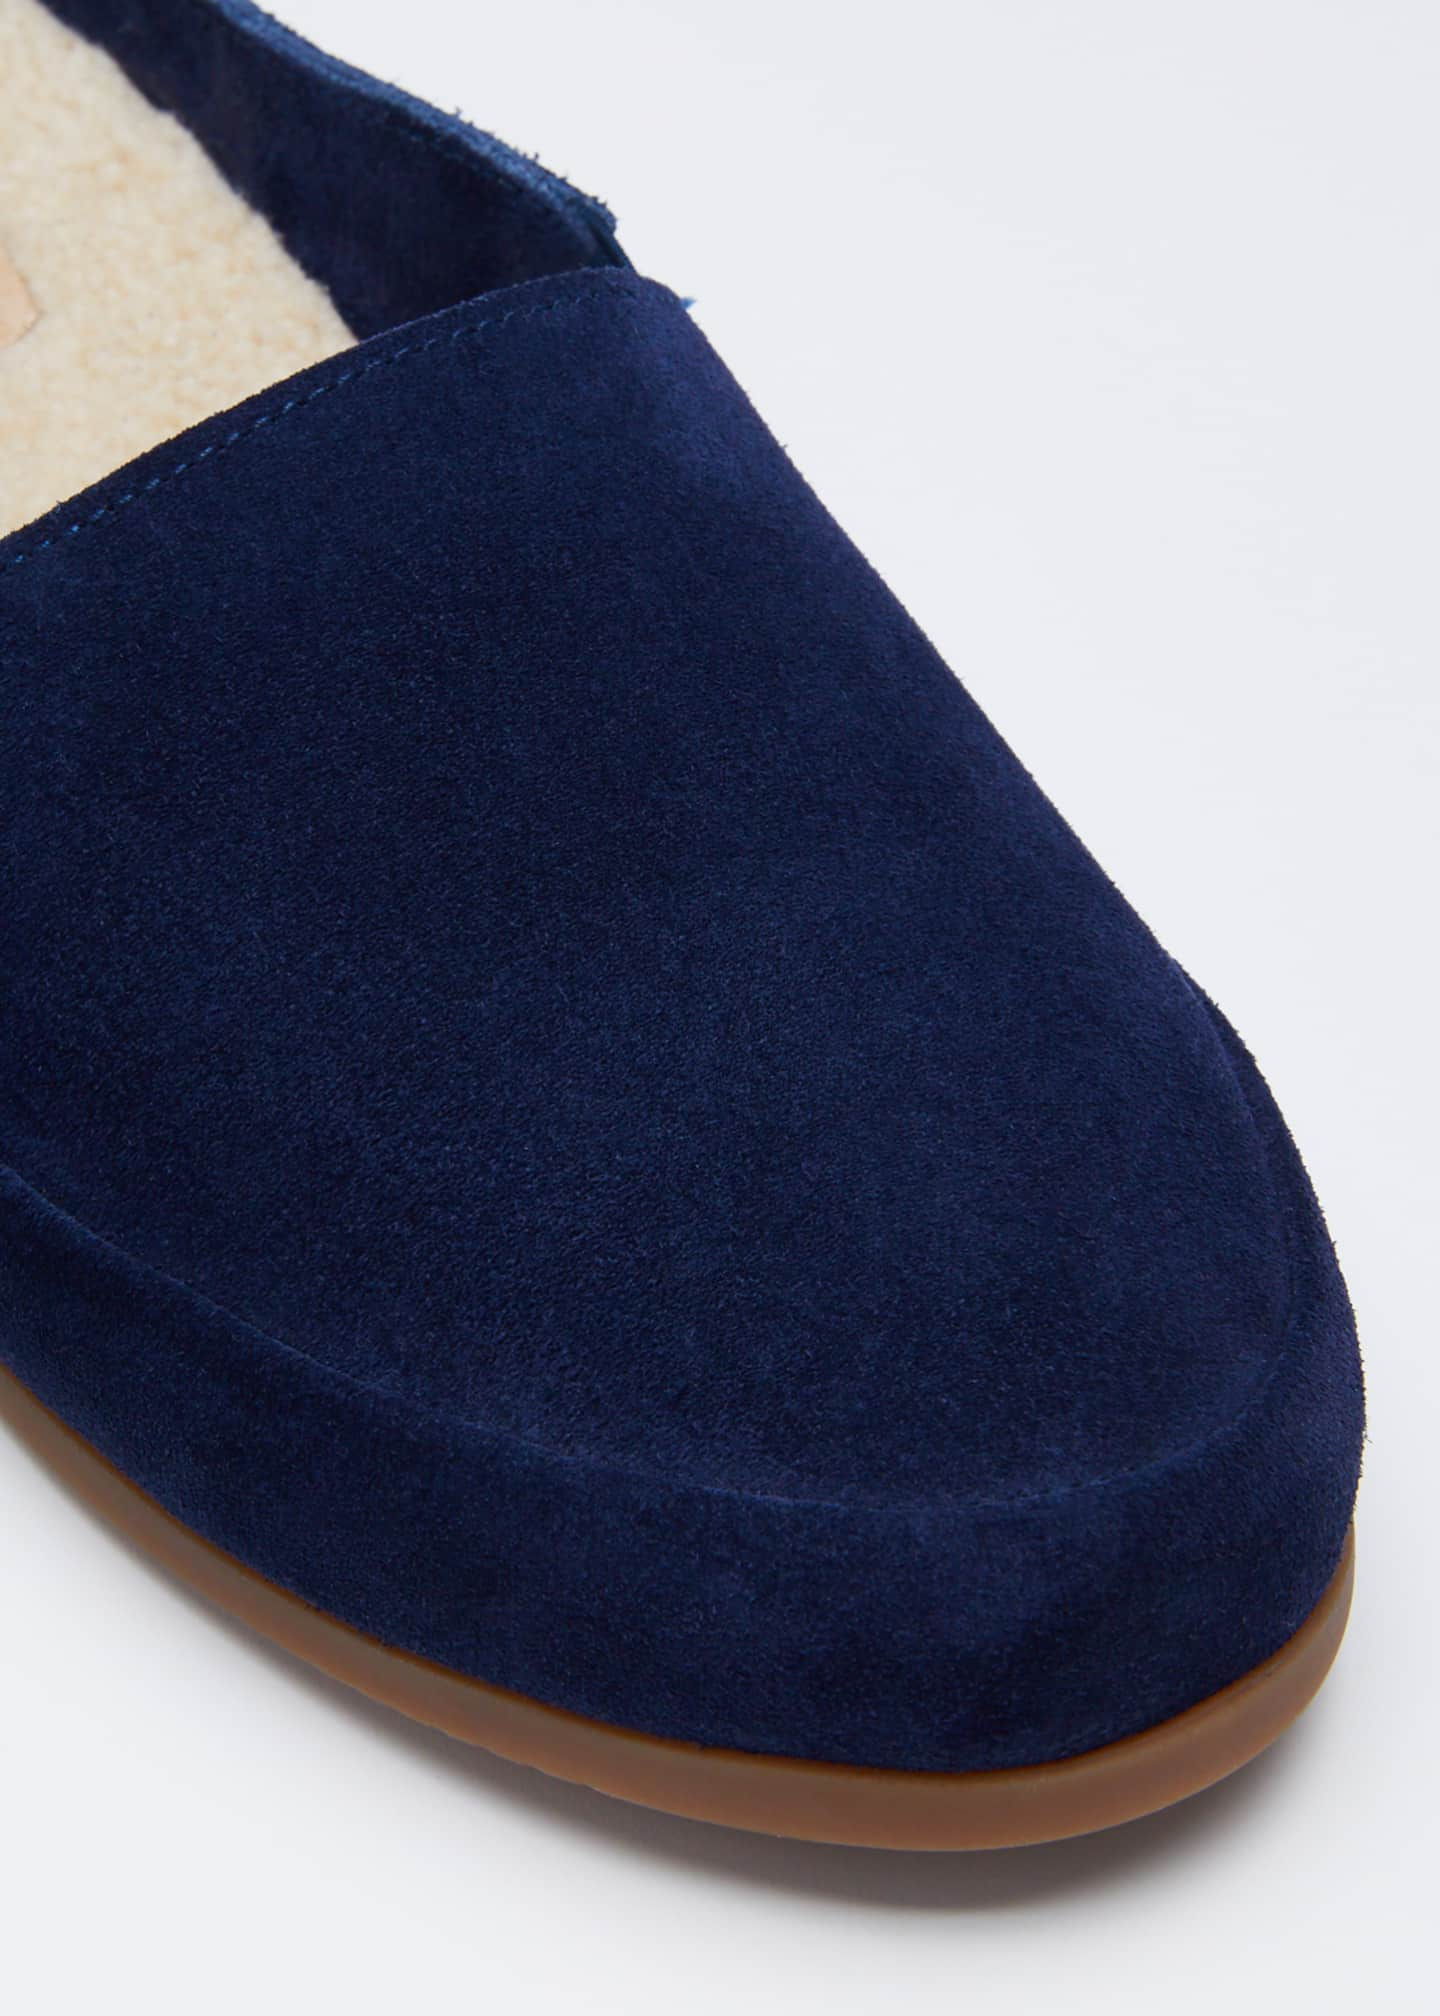 Image 3 of 3: Men's Suede Shearling Slippers